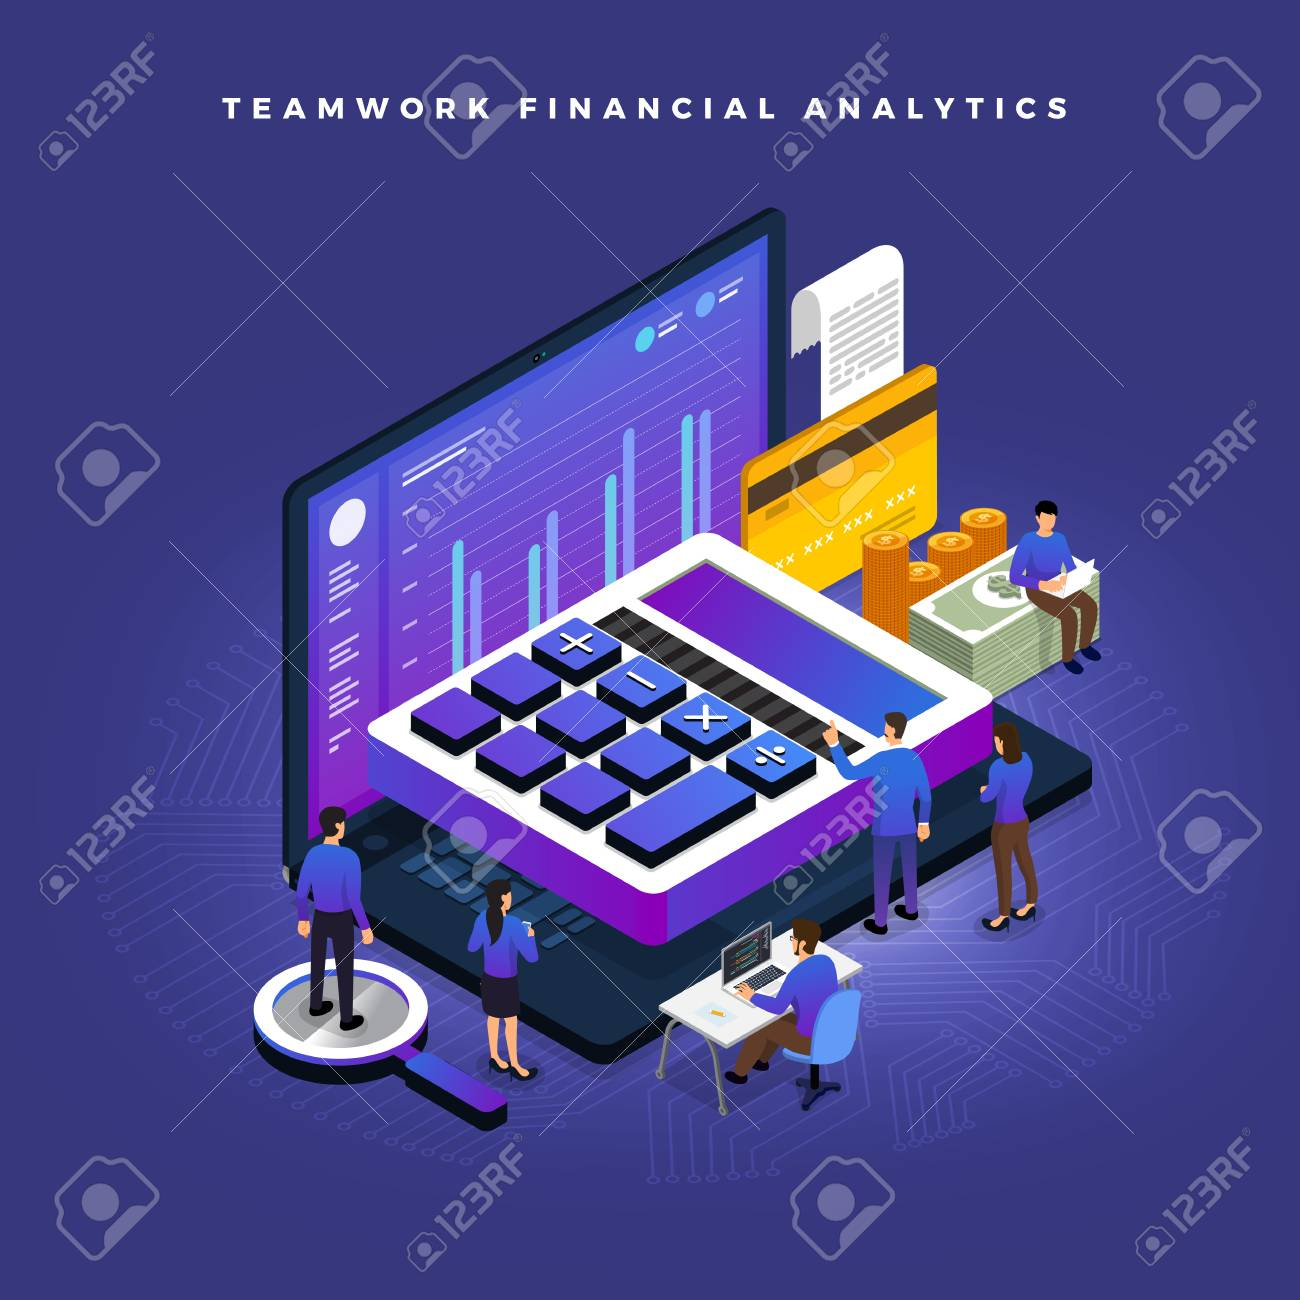 Business concept teamwork of peoples working development isometric financial business via calculator and money. Vector illustrations. - 110250290